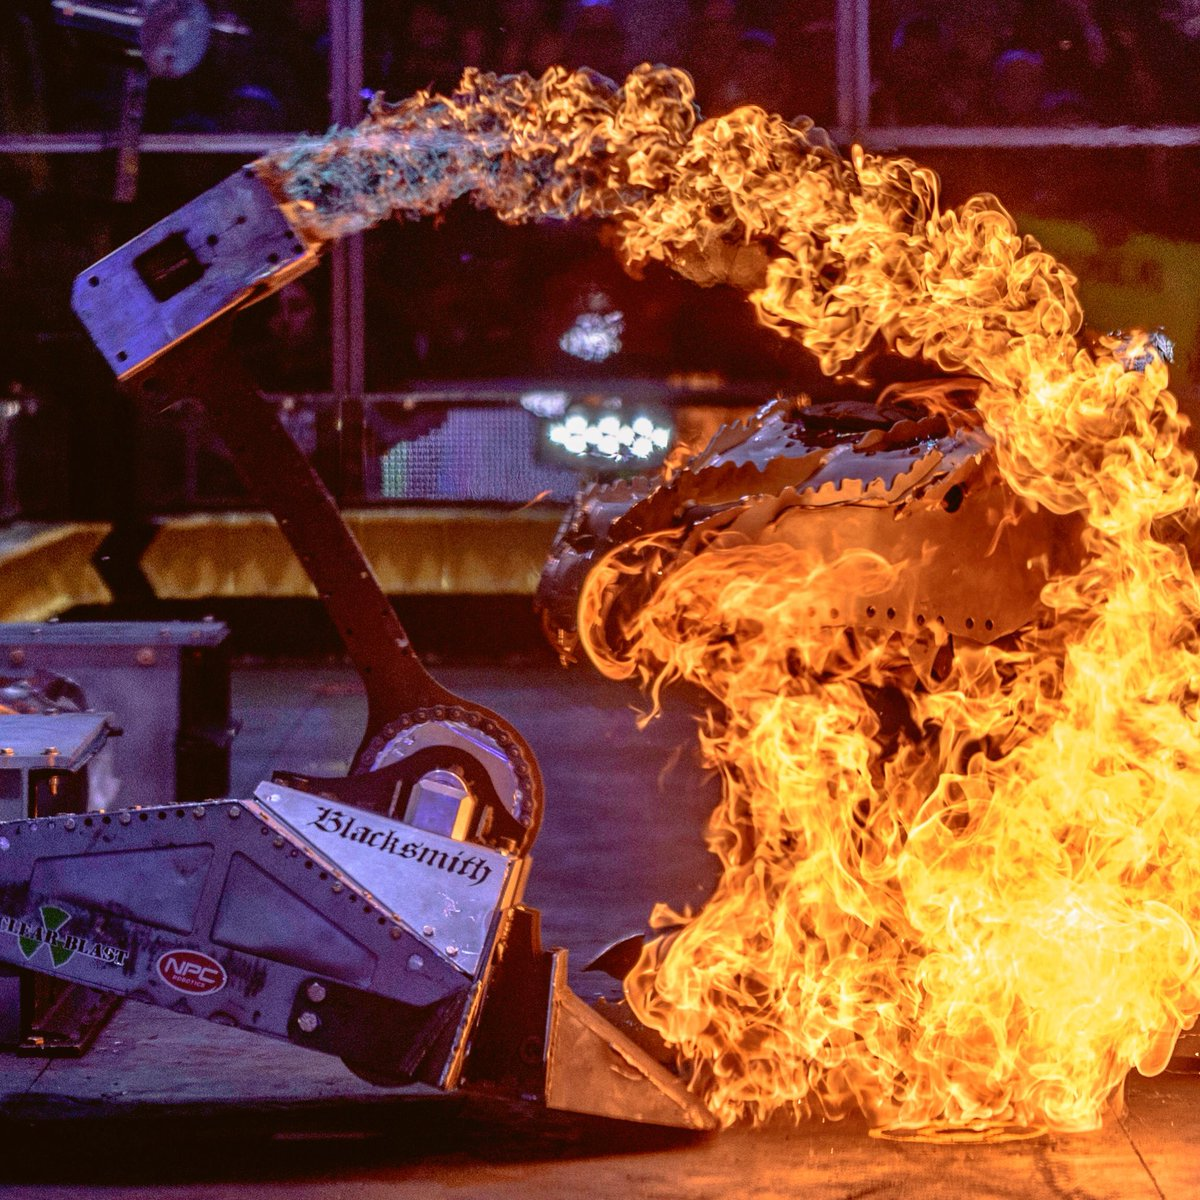 New BattleBots season is only 6 days away, and we now know what bots are fighting